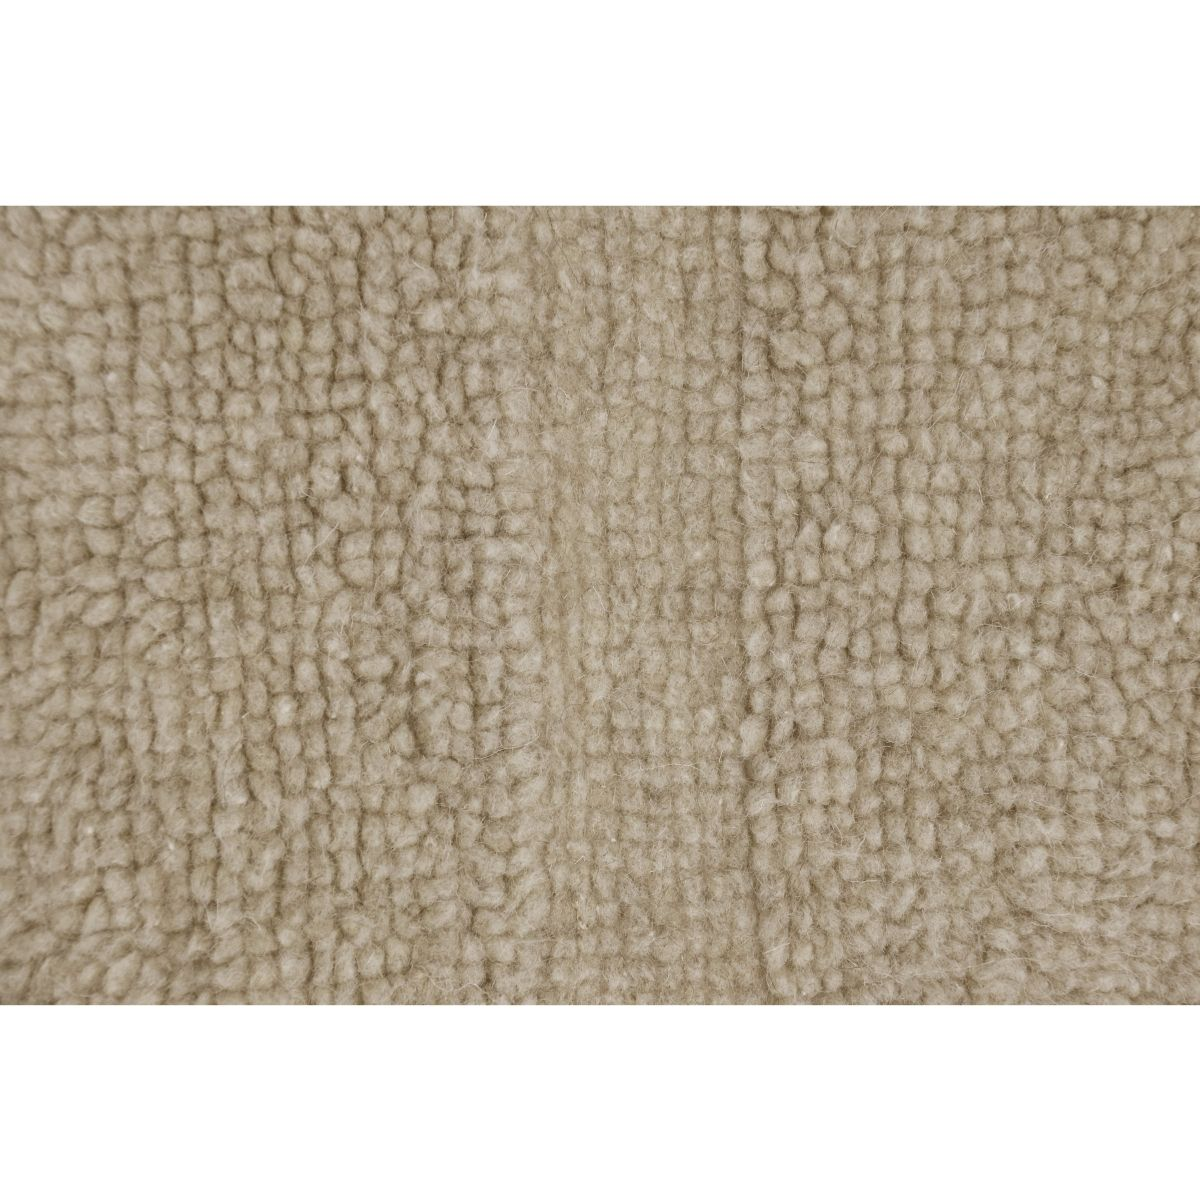 Tapete Lorena Canals Woolable Steppe Sheep Bege